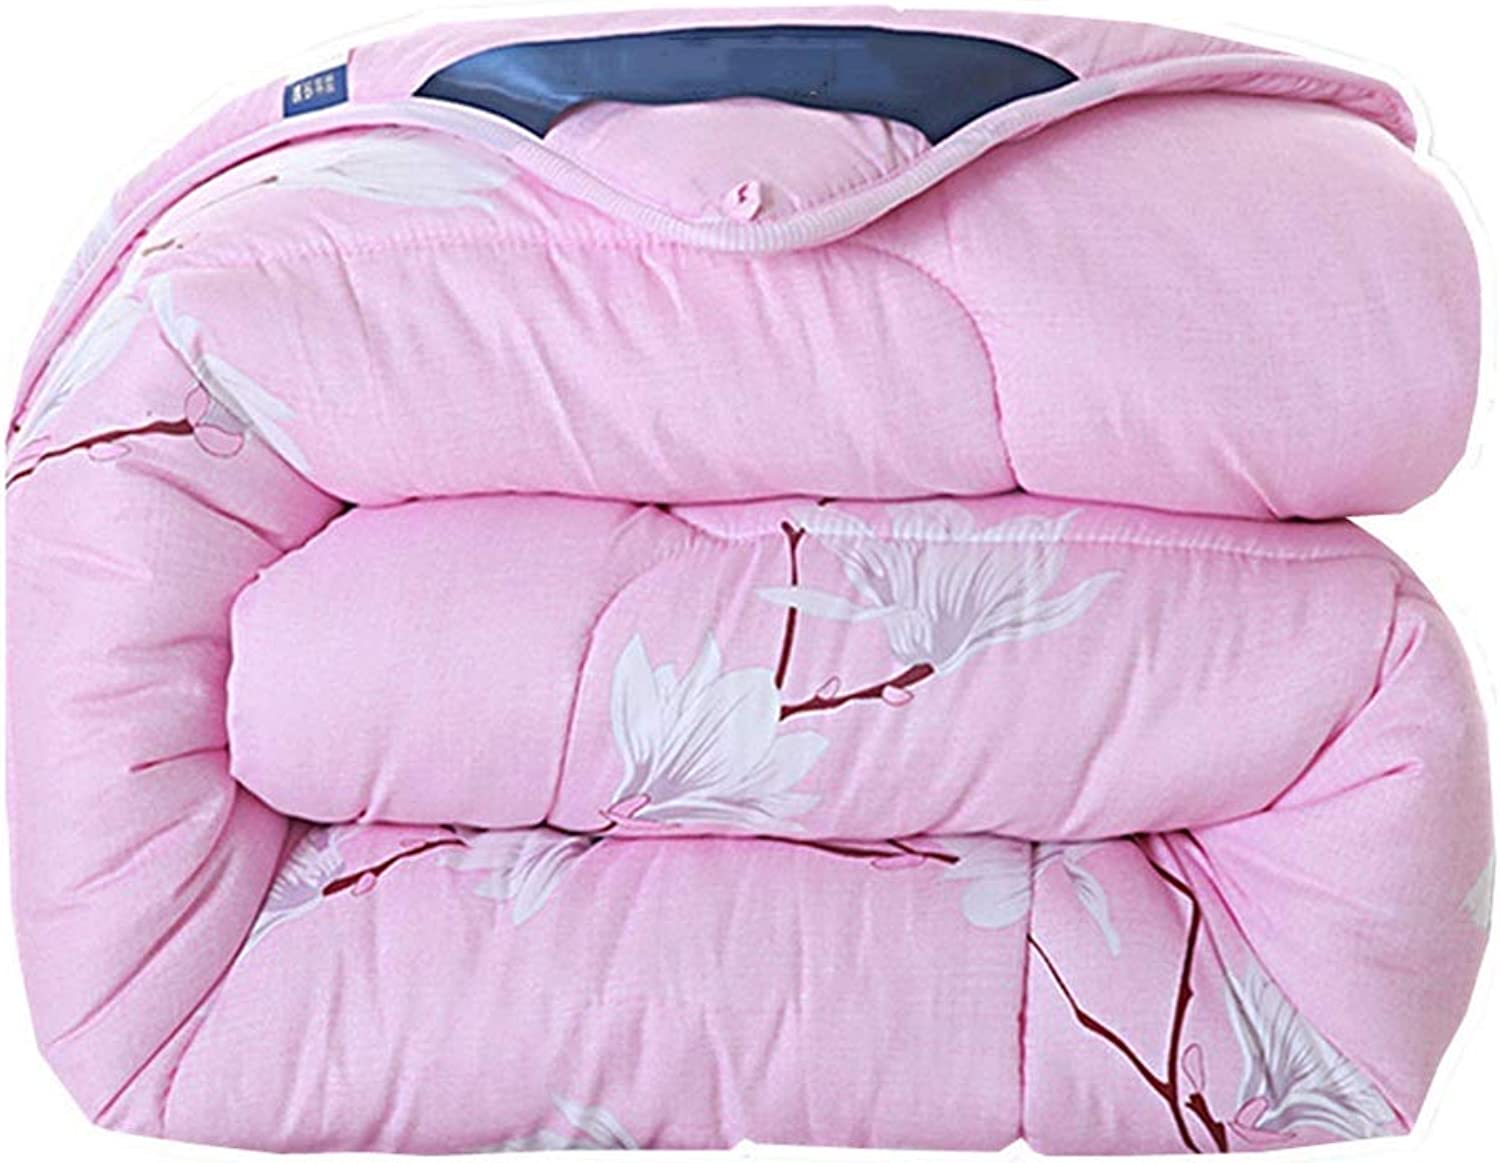 Quilt Lightweight Comforter All Seasons Quilt with Corner Loops, Anti-Allergenic and Dust Mite Resistant Pink Quilt (Size   180cmx220cm3.5kg)